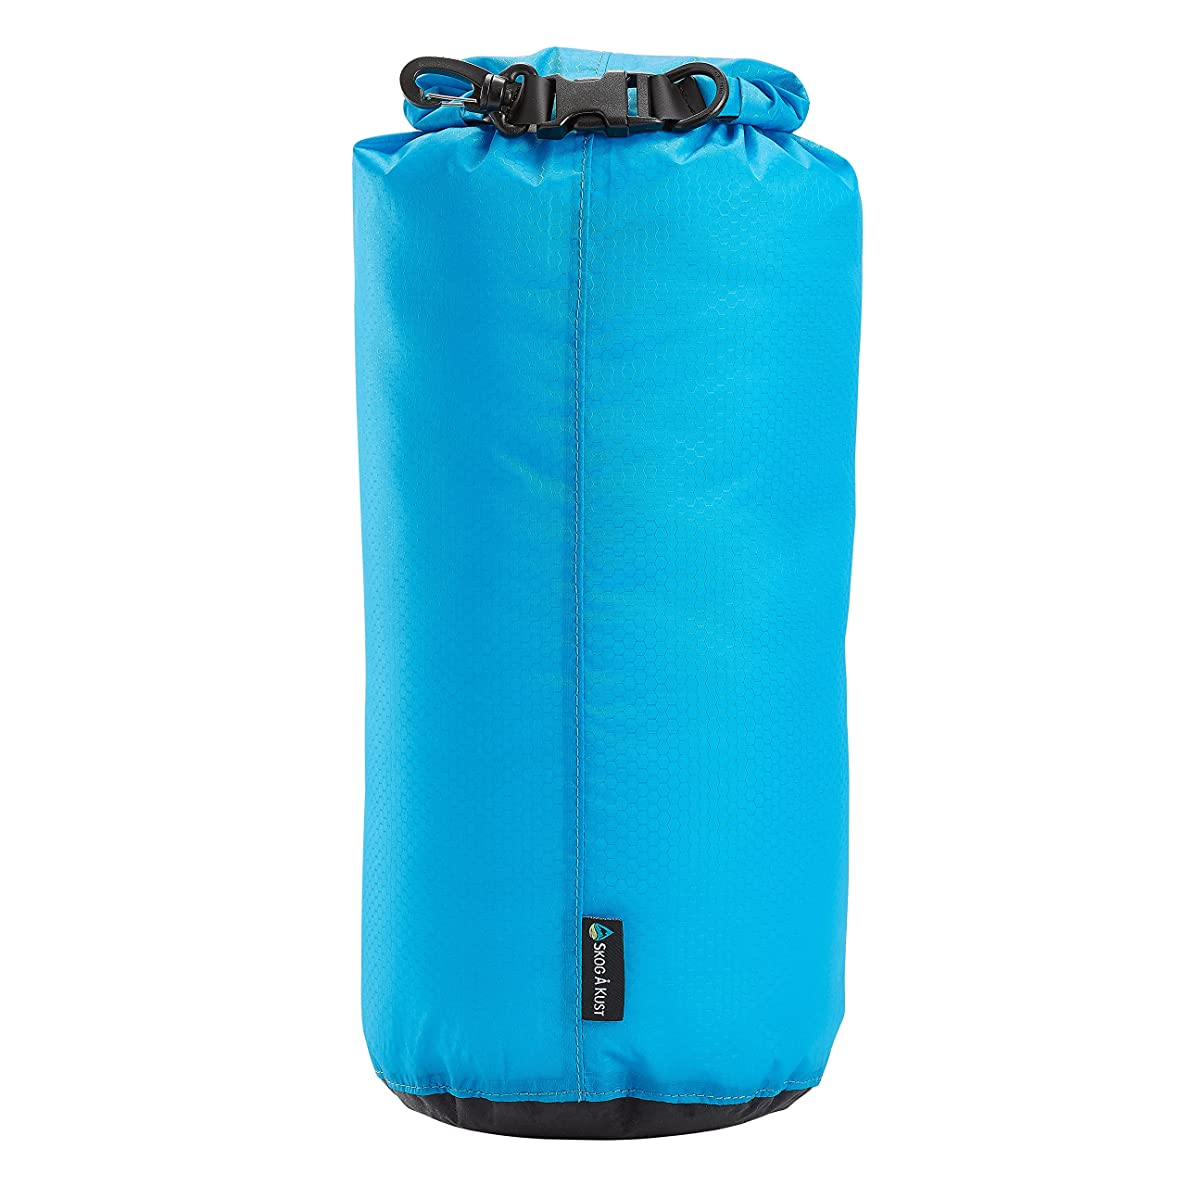 LiteSak Waterproof Ultra Light Dry Bag | Protects Gear from Water, Sand, Dirt & Snow | 70-Denier Silicone-Coated Nylon & Heat-Taped Seams | Weighs Only Ounces, 1.5L to 40L Sizes | by Skog ? Kust snwntobrbpagpsah